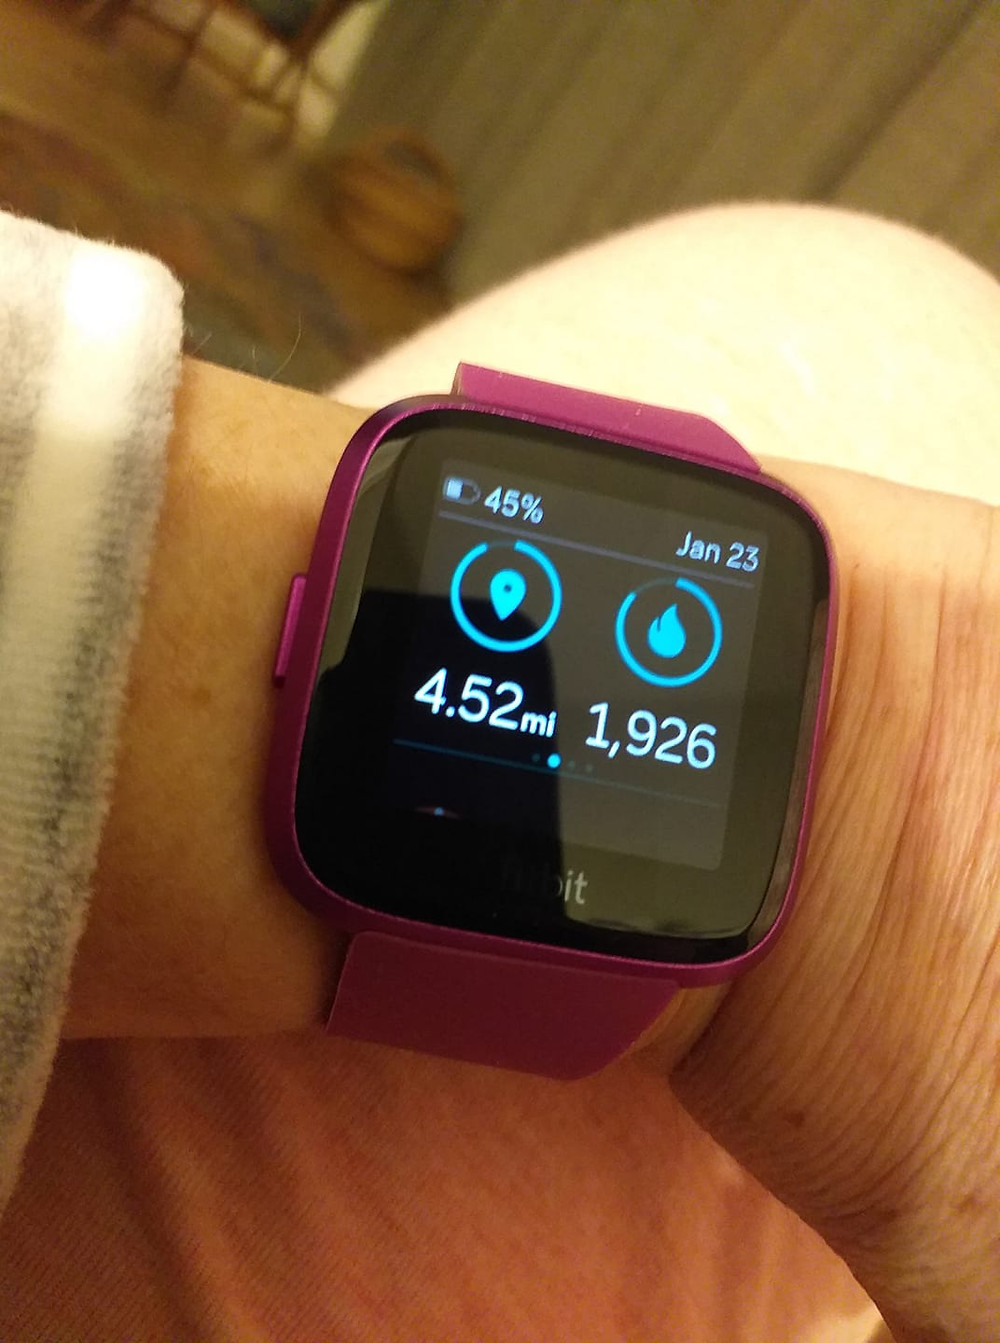 A fitness watch on someone's wrist displays distance and number of steps data.